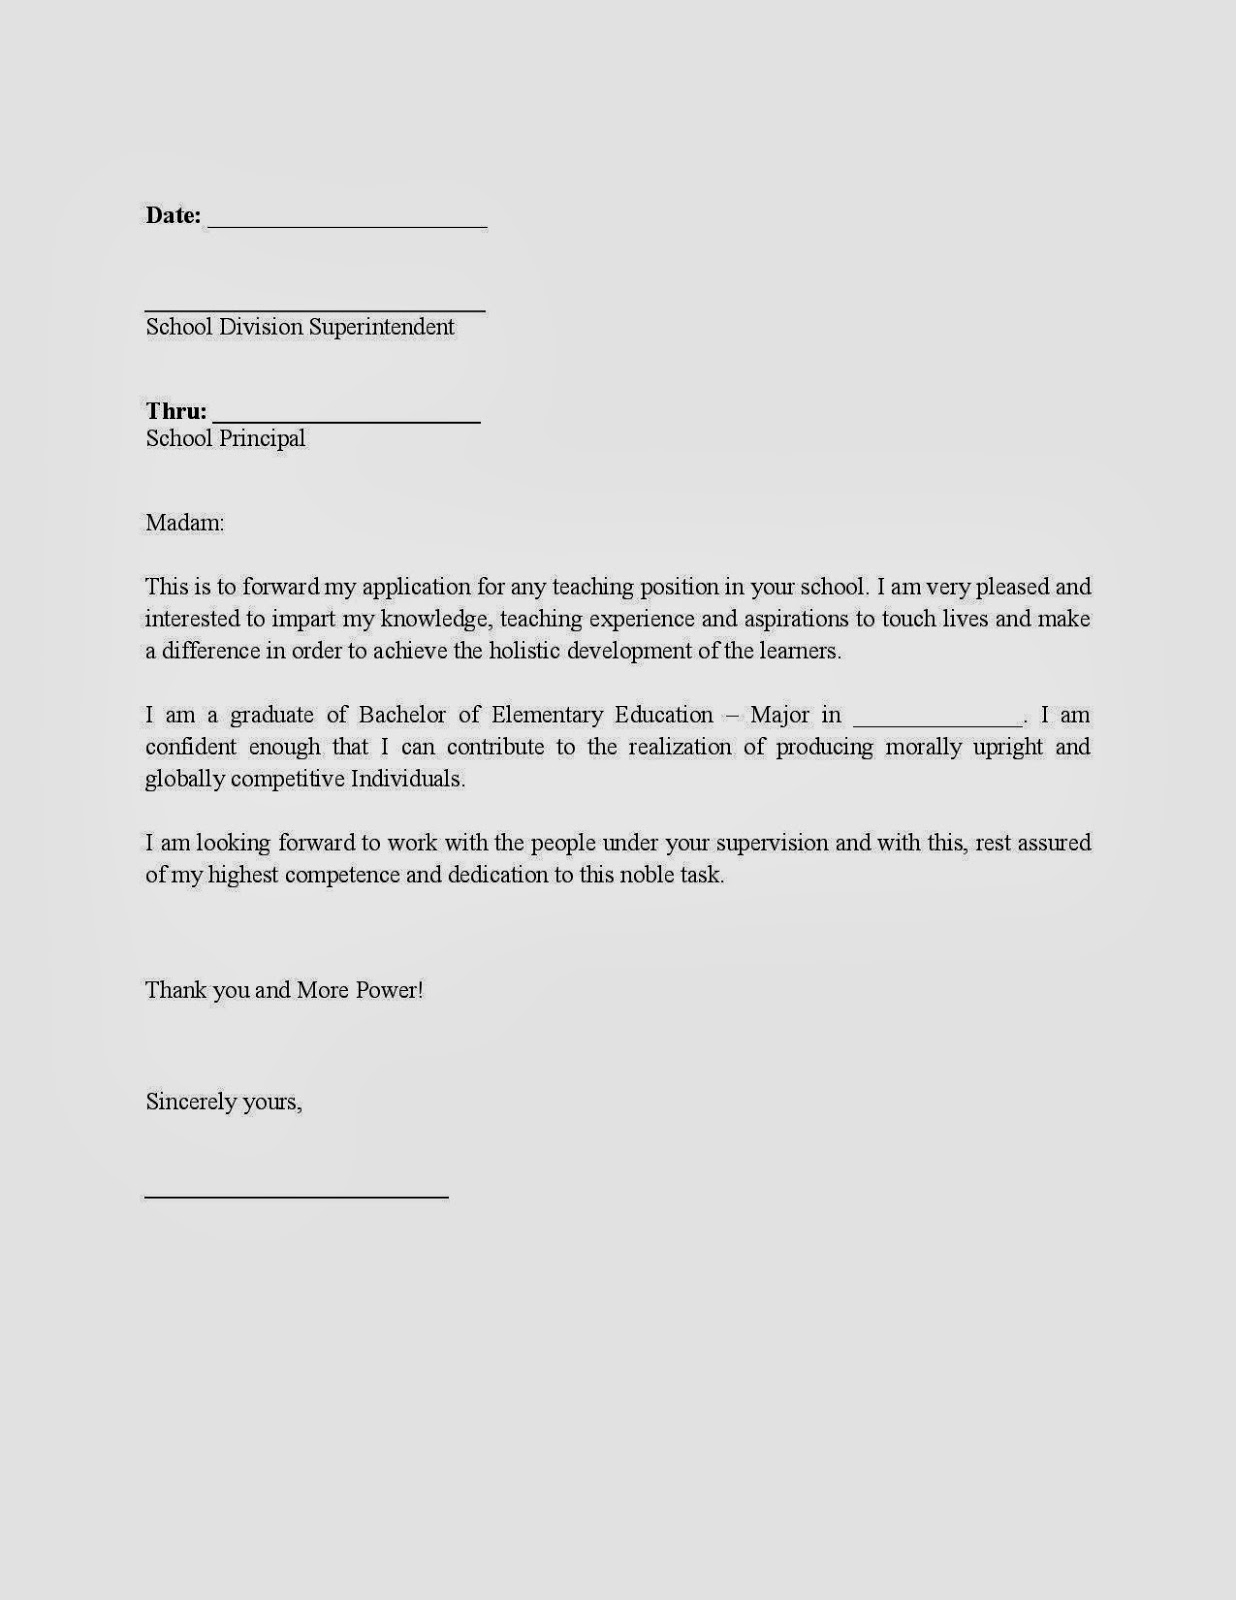 Format of application letter for leave to principal   Assistance